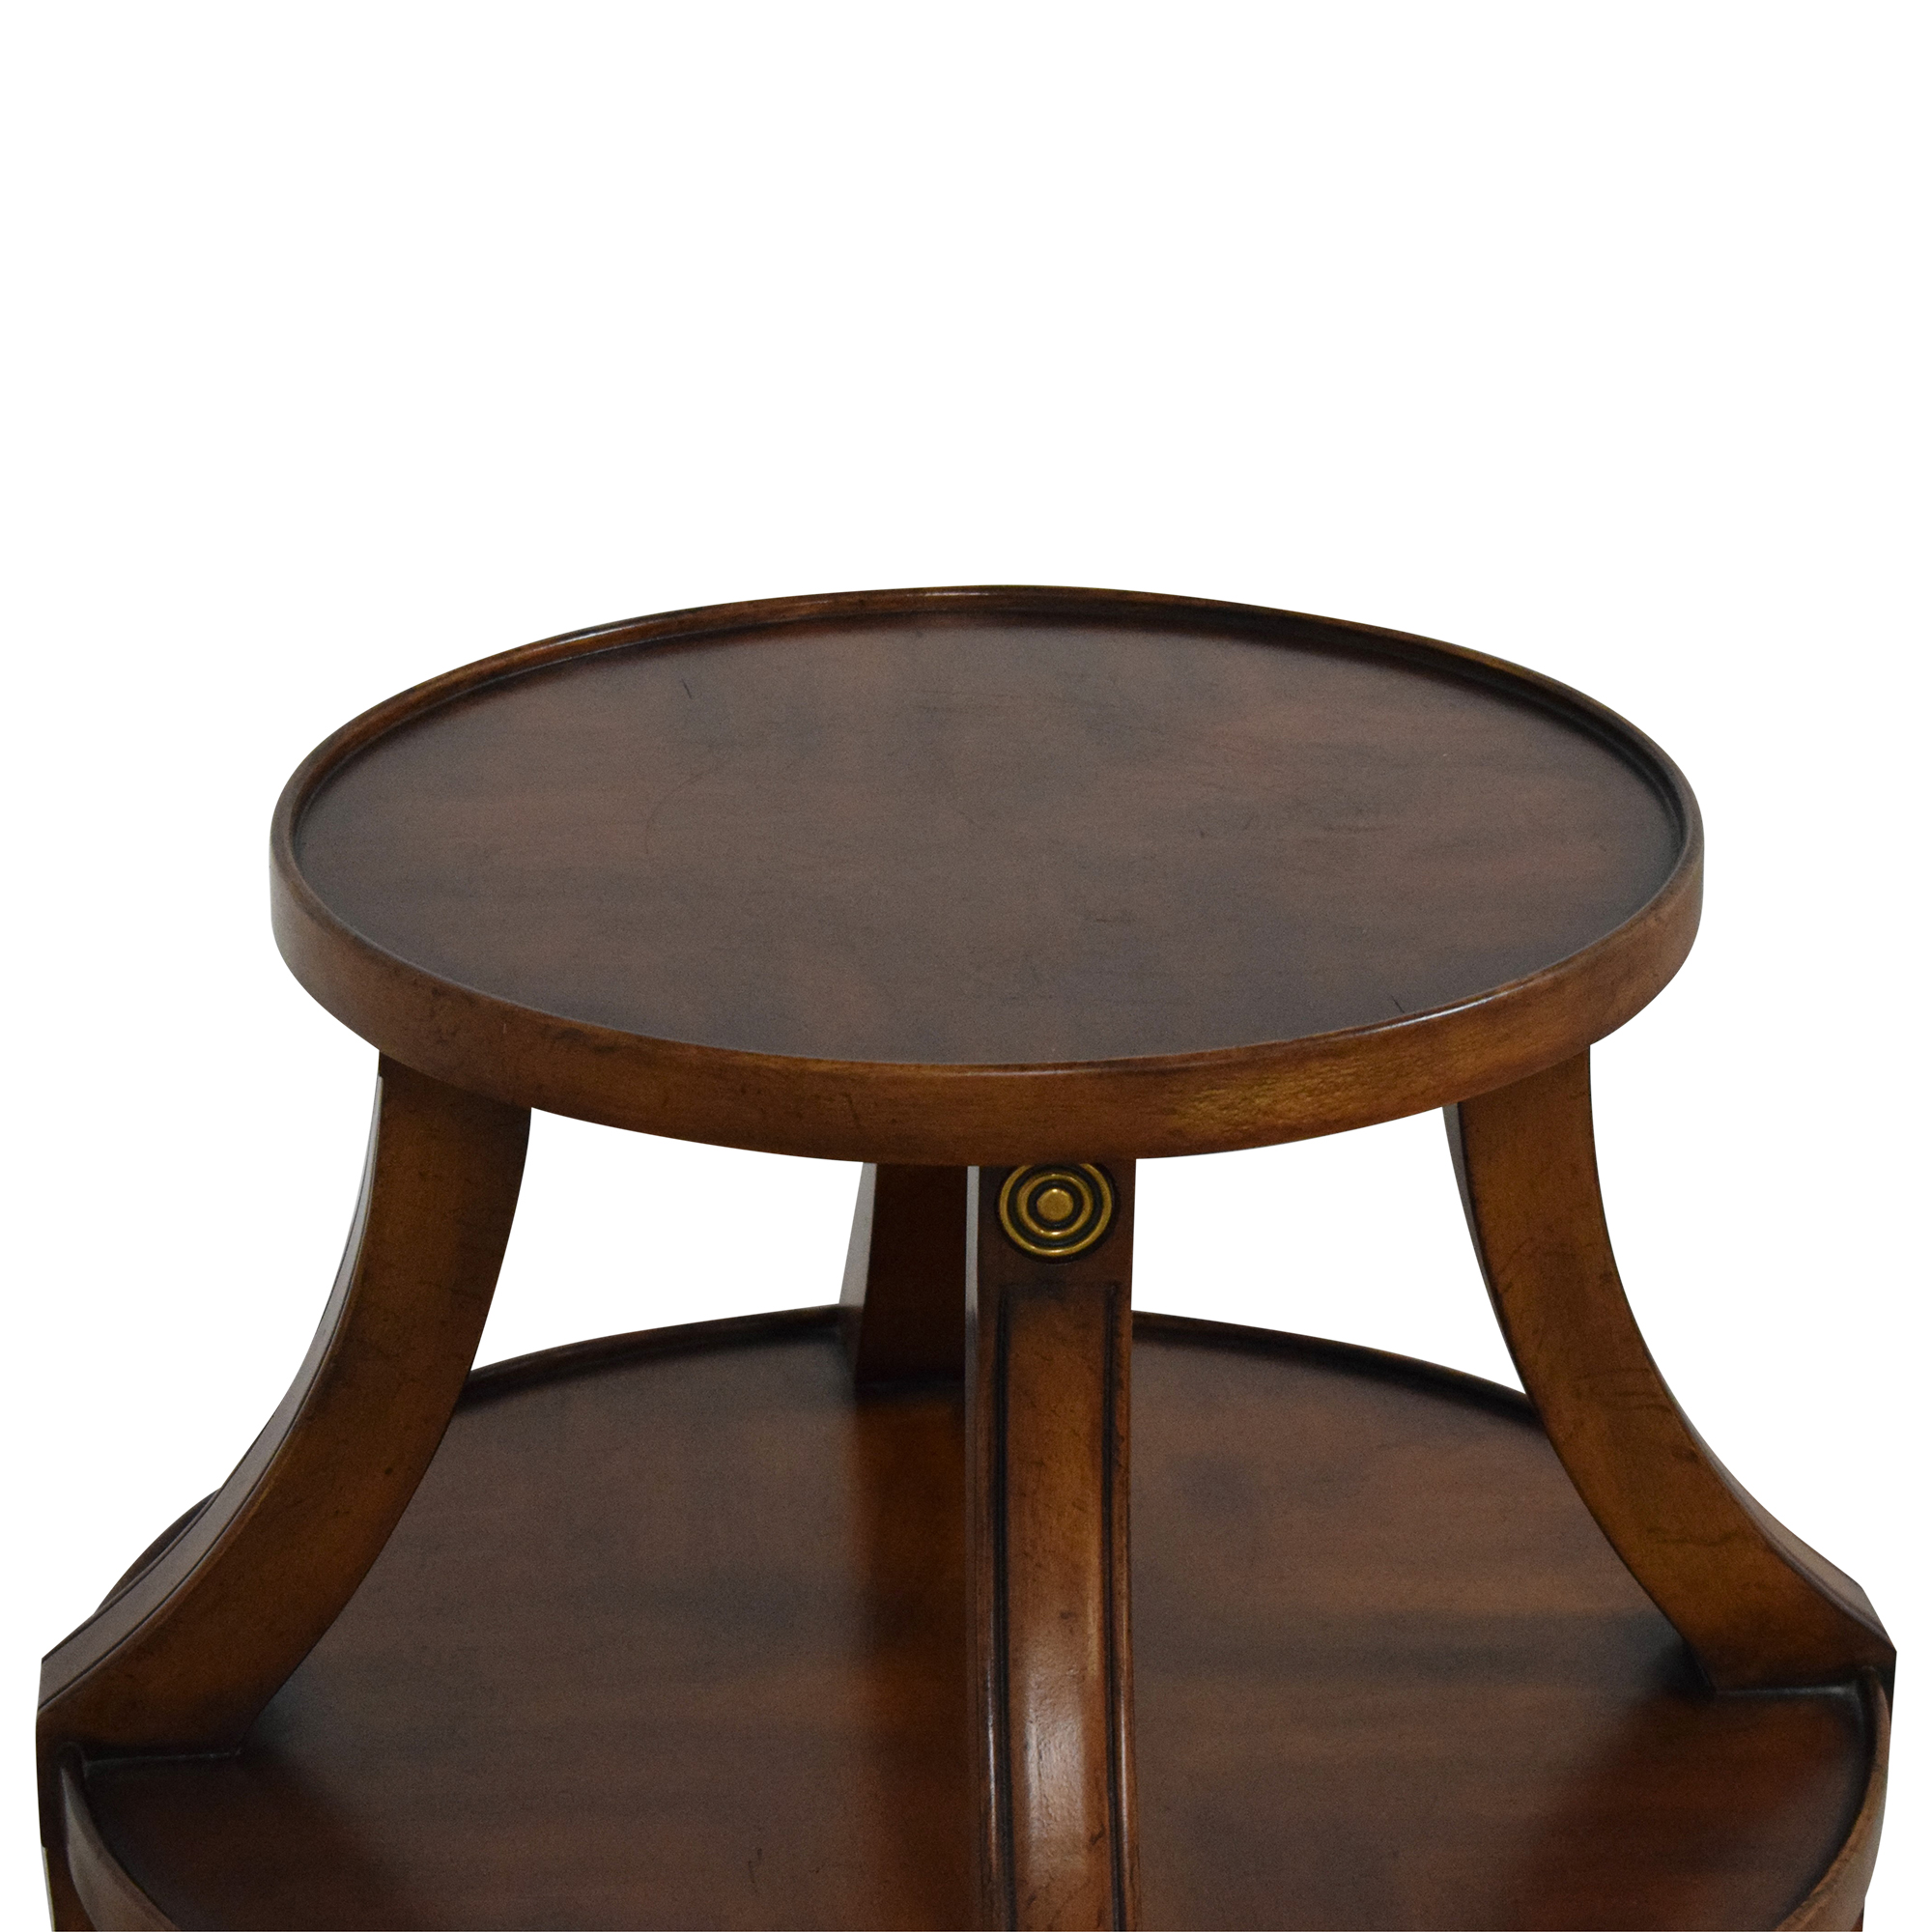 Ethan Allen Ethan Allen Tiered Accent Table pa